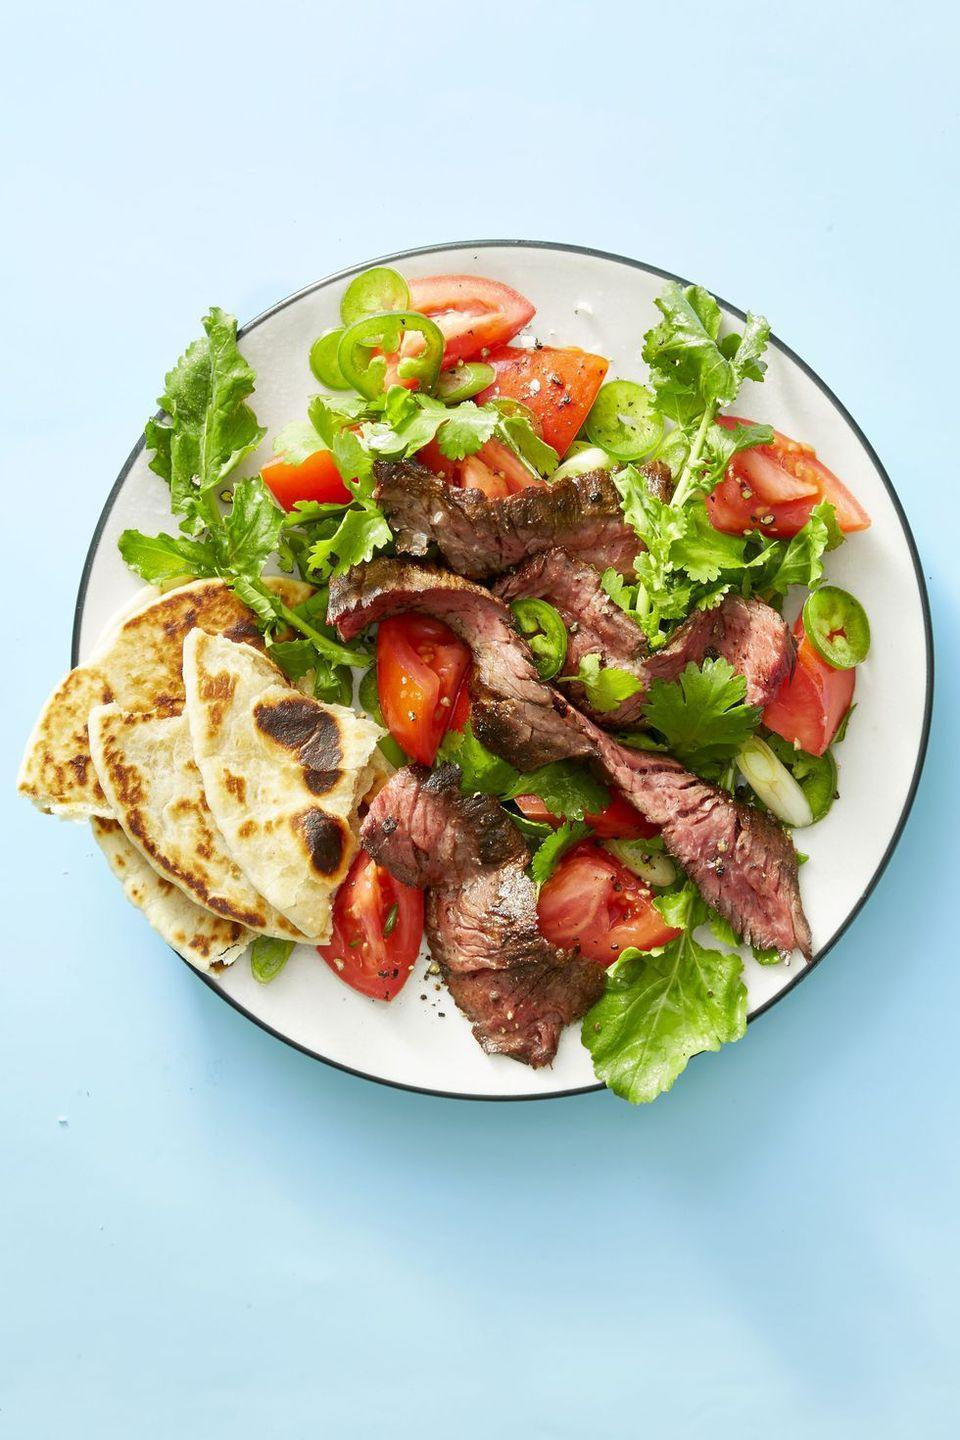 """<p>Satisfy your taco cravings with this salad recipe, then add tortilla slices to the plate when you're done mixing it all together!</p><p><em><a href=""""https://www.goodhousekeeping.com/food-recipes/easy/a19855342/grilled-steak-tortilla-salad-recipe/"""" rel=""""nofollow noopener"""" target=""""_blank"""" data-ylk=""""slk:Get the recipe for Grilled Steak Tortilla Salad »"""" class=""""link rapid-noclick-resp"""">Get the recipe for Grilled Steak Tortilla Salad »</a></em></p><p><strong>RELATED:</strong> <a href=""""https://www.goodhousekeeping.com/food-recipes/healthy/g180/healthy-salads/"""" rel=""""nofollow noopener"""" target=""""_blank"""" data-ylk=""""slk:30 Healthy Salads for a Very Filling, Very Un-boring Meal"""" class=""""link rapid-noclick-resp"""">30 Healthy Salads for a Very Filling, Very Un-boring Meal</a></p>"""